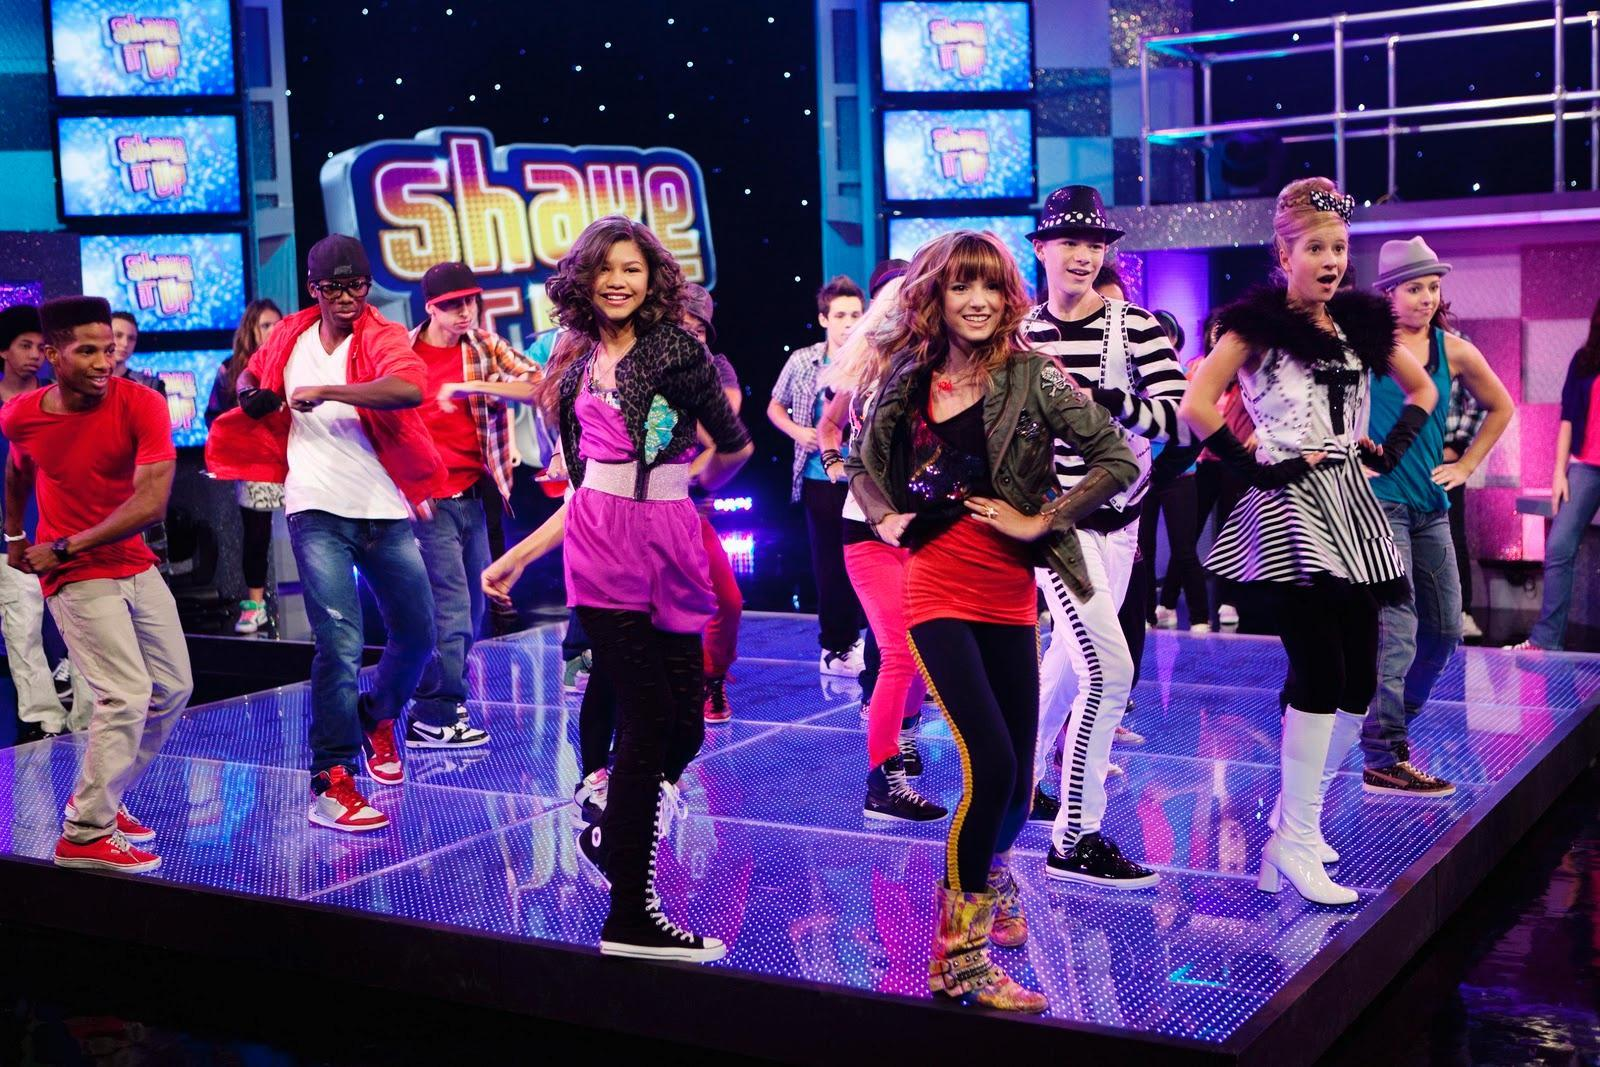 Which of these characters dance on Shake It Up?